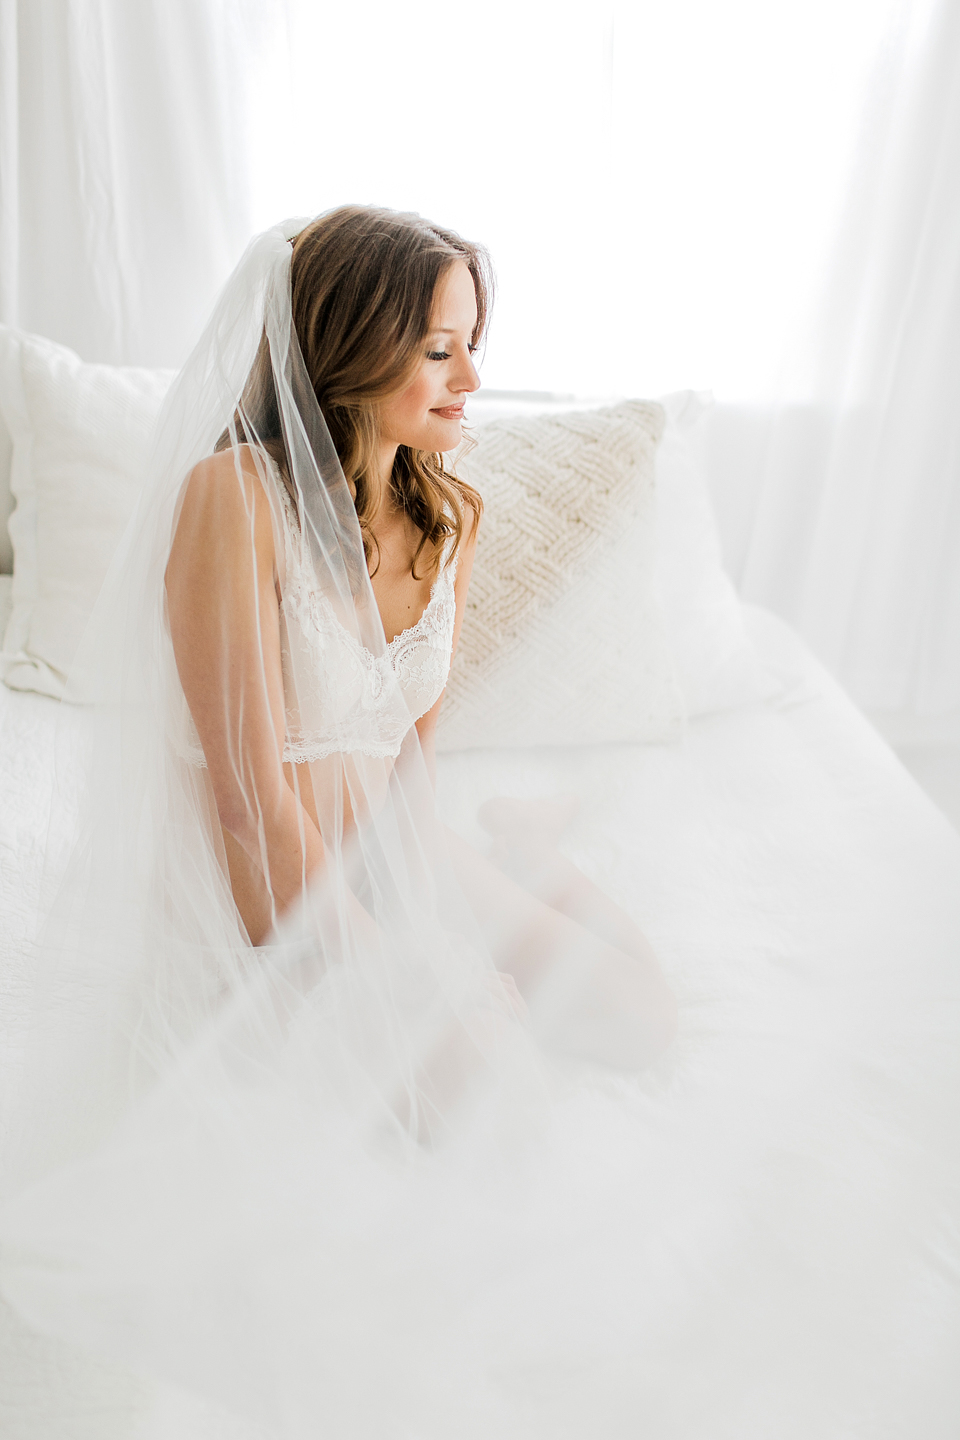 I chose Rachel for a mini session boudoir shoot, and I have never felt more comfortable and confident! I was super nervous and didn't know what to expect, but Rachel was SO fun to work with and made it so easy! I gifted the photos to my new husband the night before our wedding, and he said it is the best gift he has ever been given! The images are beautiful and tasteful and I am so so glad I stepped out of my comfort zone because I couldn't imagine a better wedding present for my now husband! - Jayde